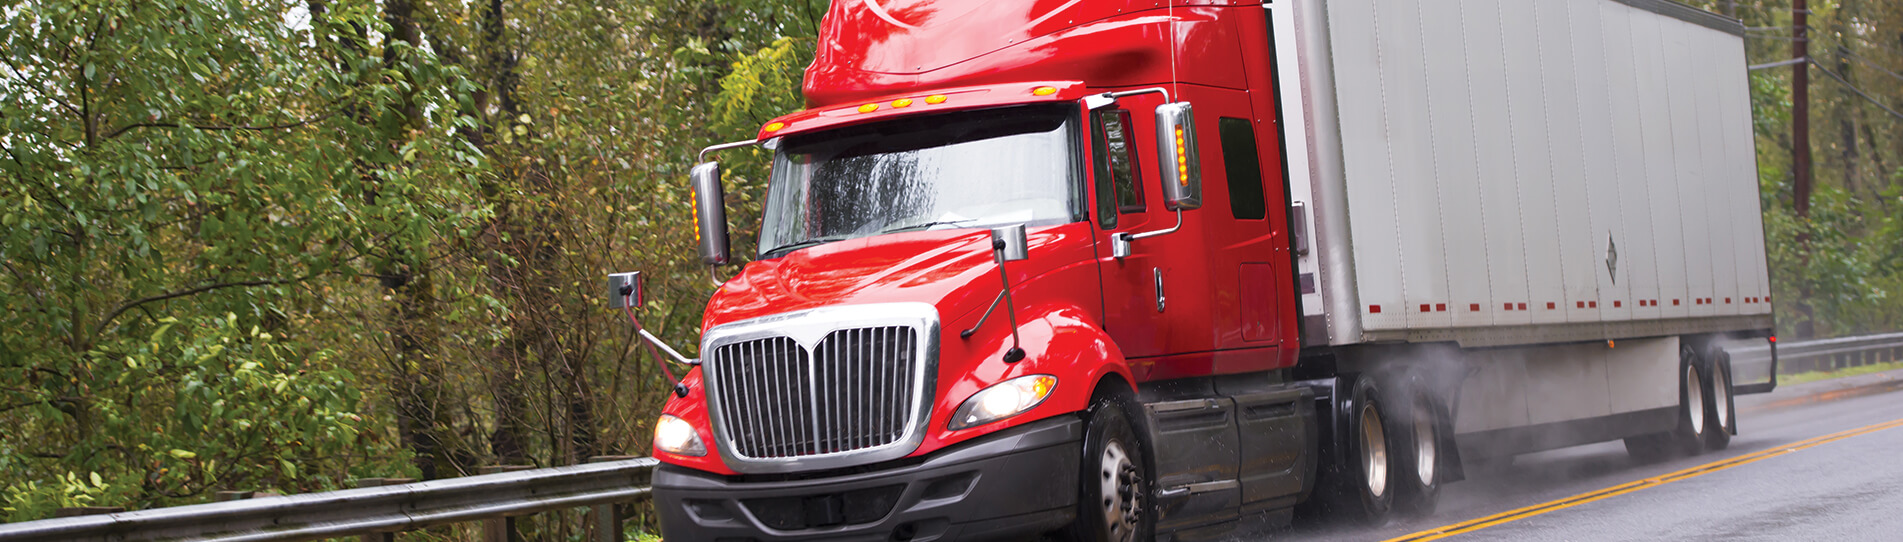 Asbury Park Trucking Company, Trucking Services and Long Haul Trucking